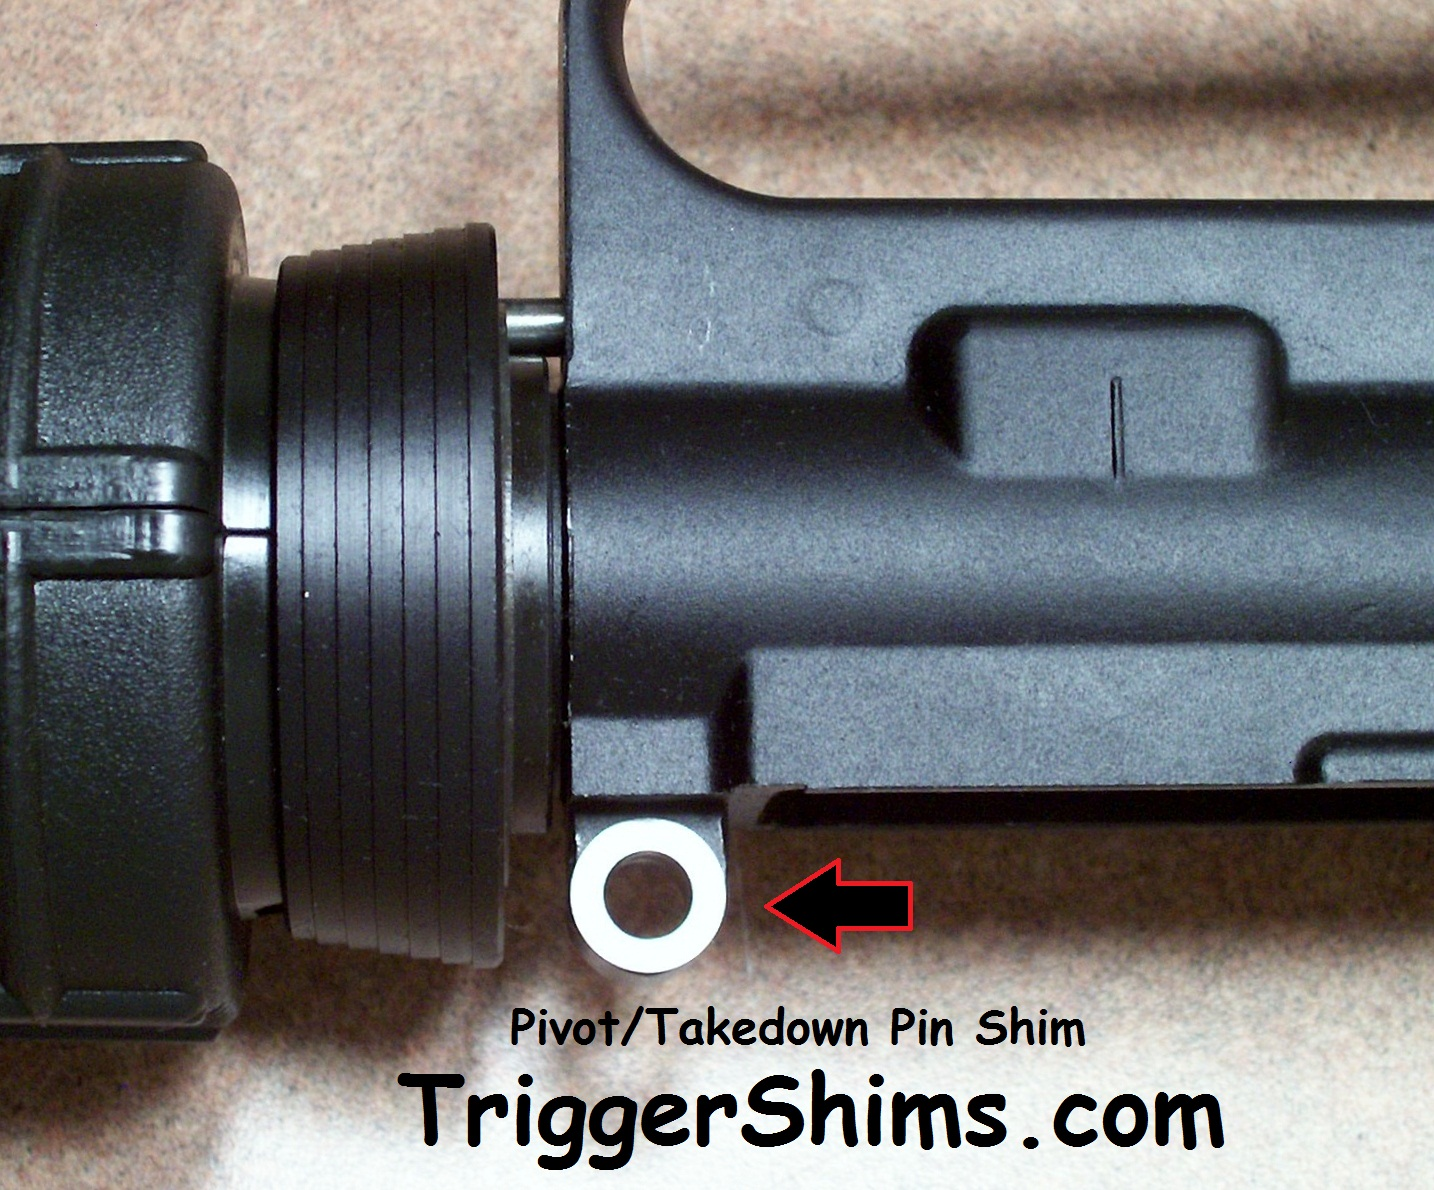 AR-15 Pivot Pin Shims